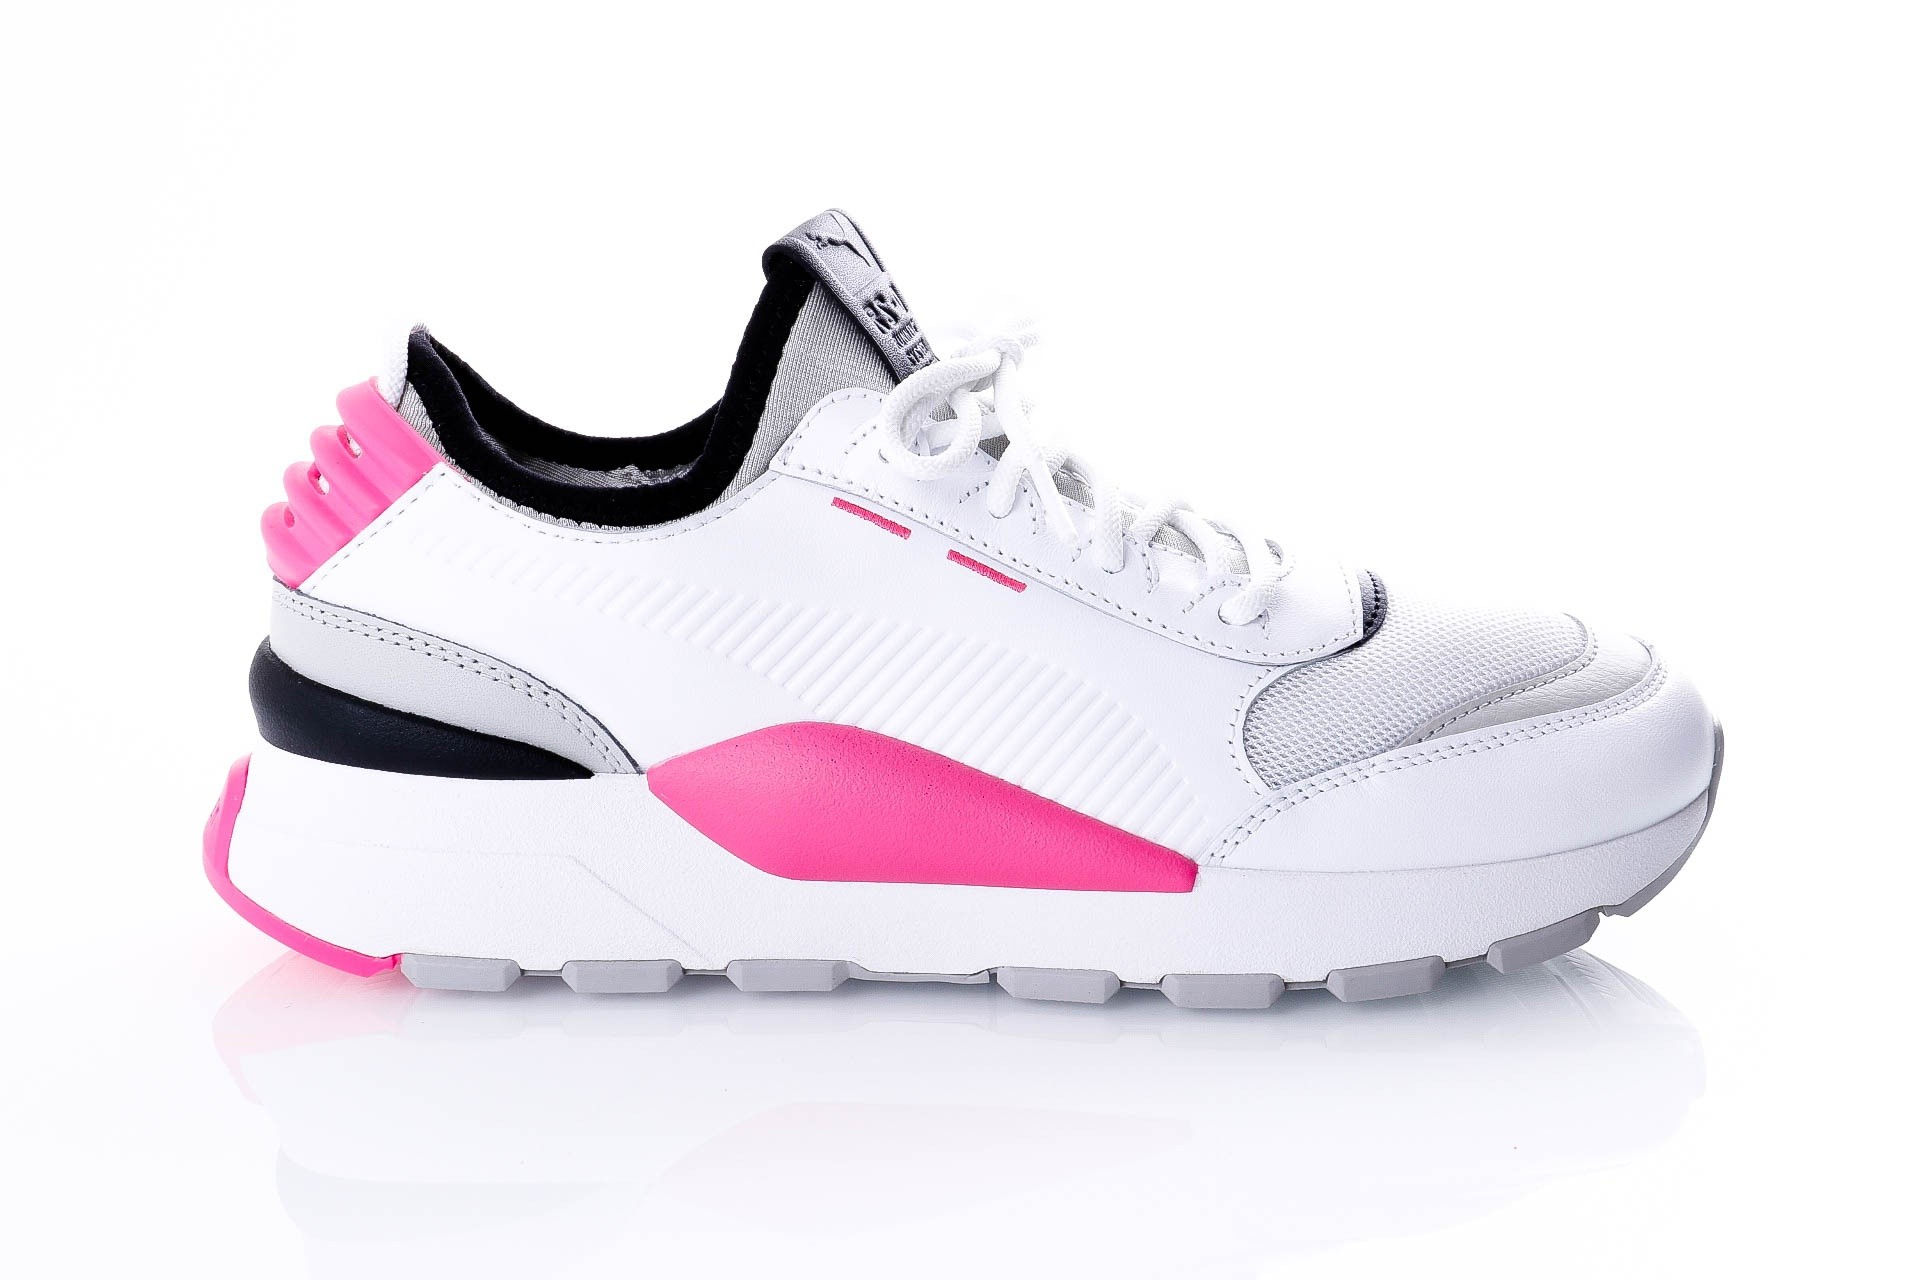 Foto van Puma RS-0 808 366890 Sneakers puma white-grey violet-knockout pink